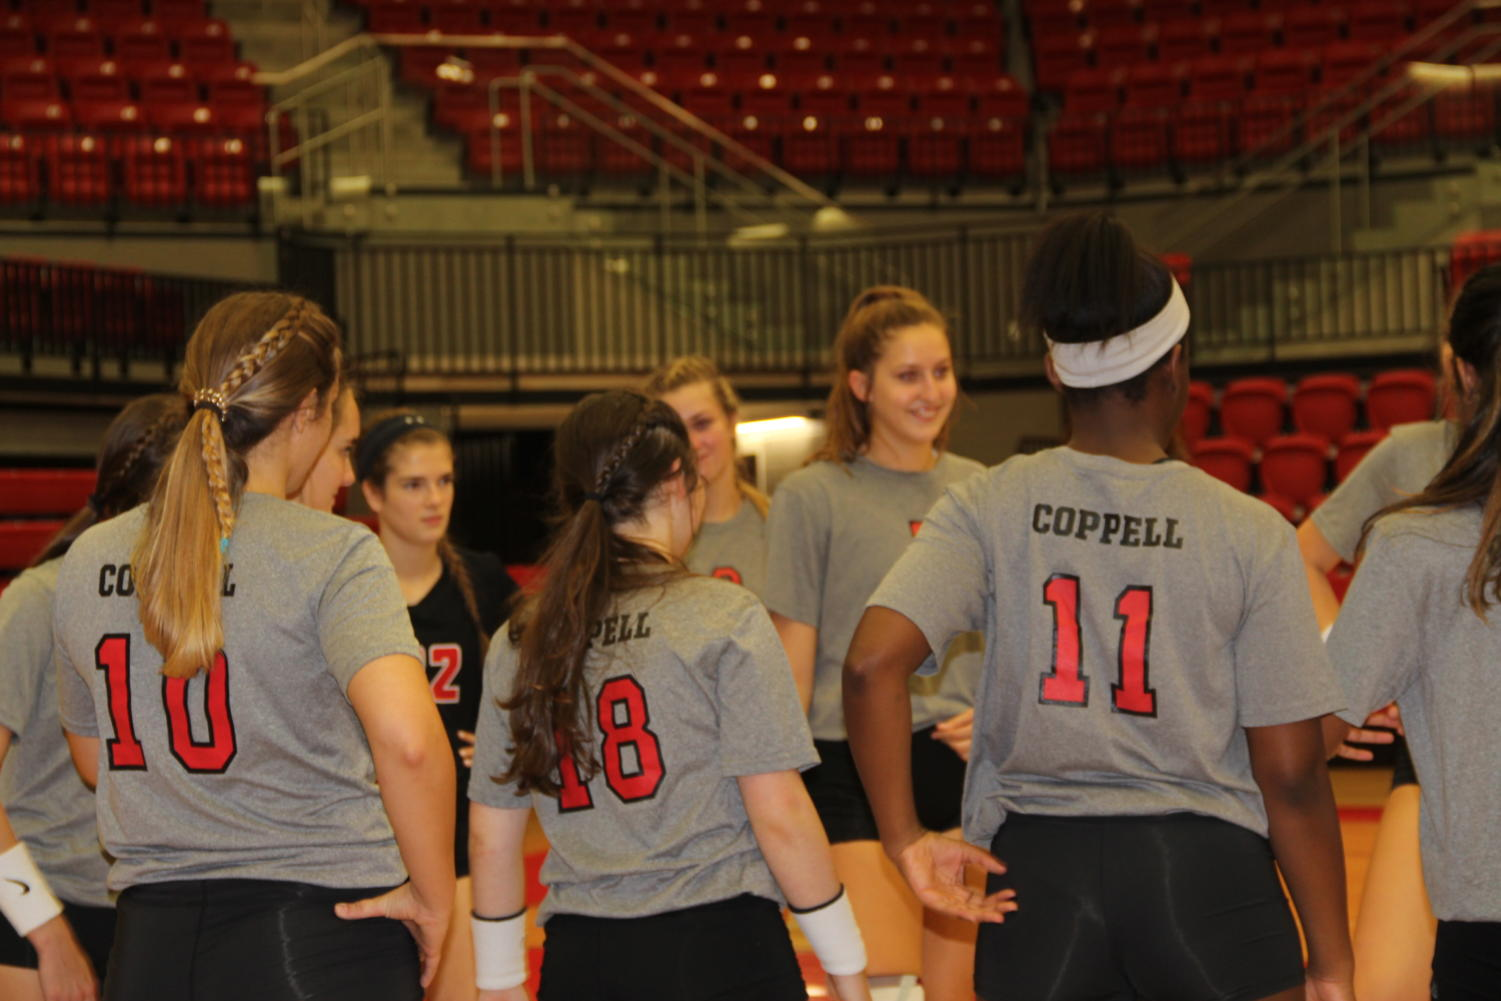 The varsity volleyball team circles up before their match against the Irving Nimitz this past Friday night in the arena.